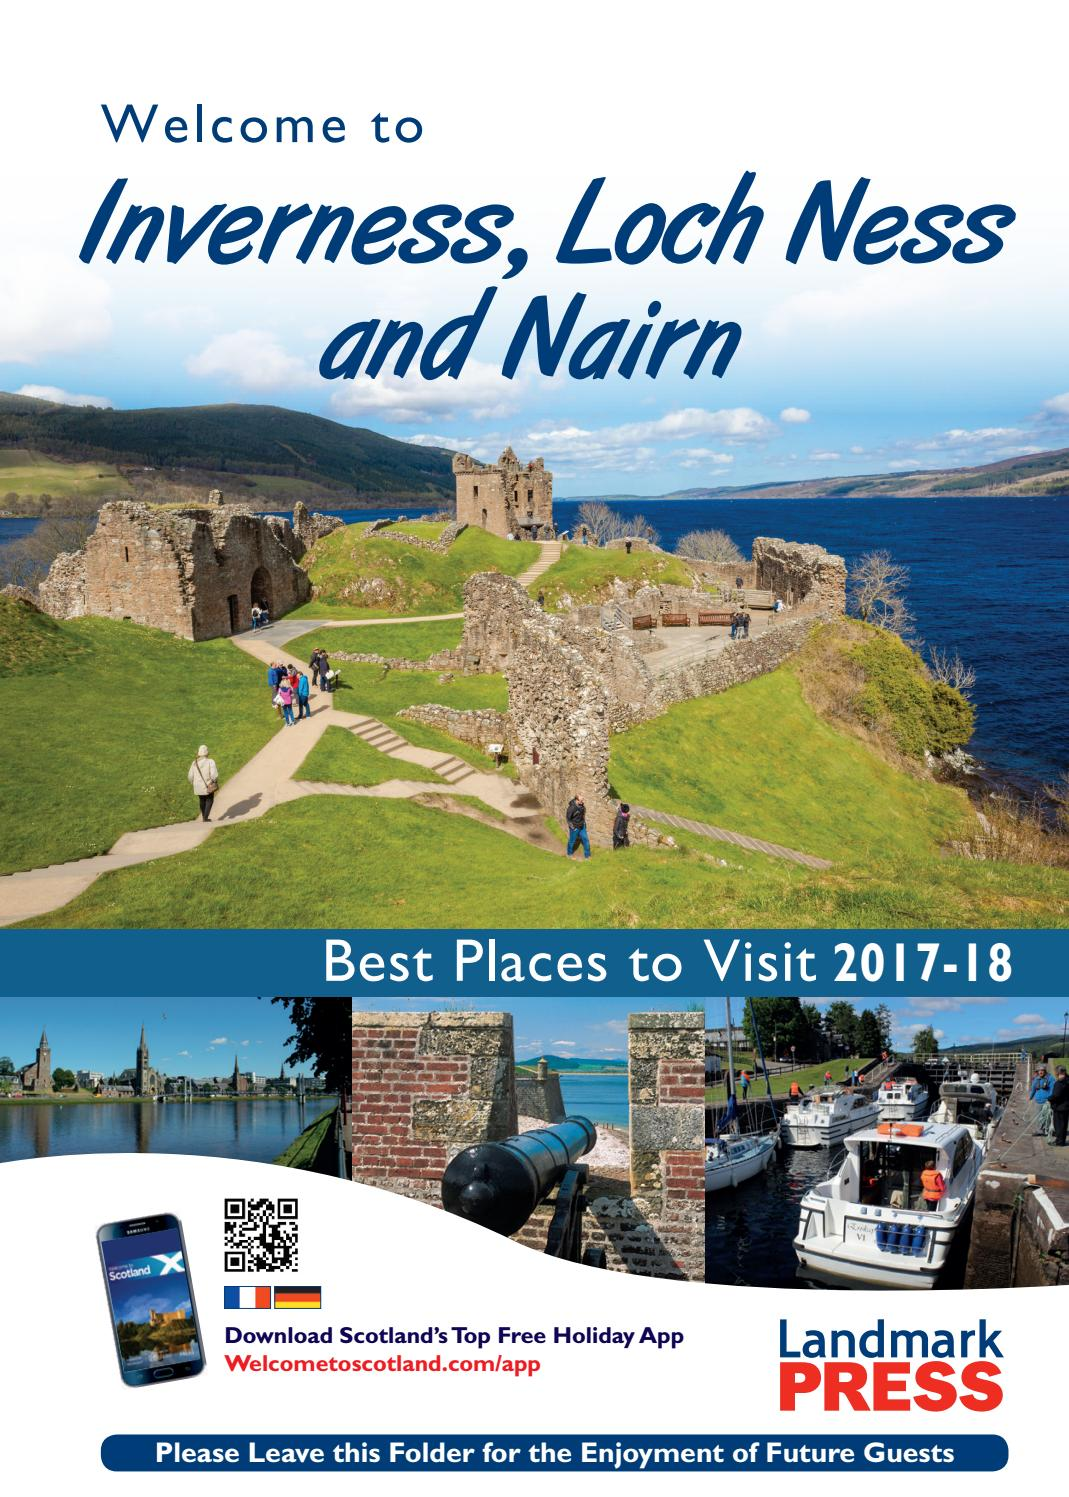 Welcome to Inverness, Loch Ness and Nairn 2017-18 by